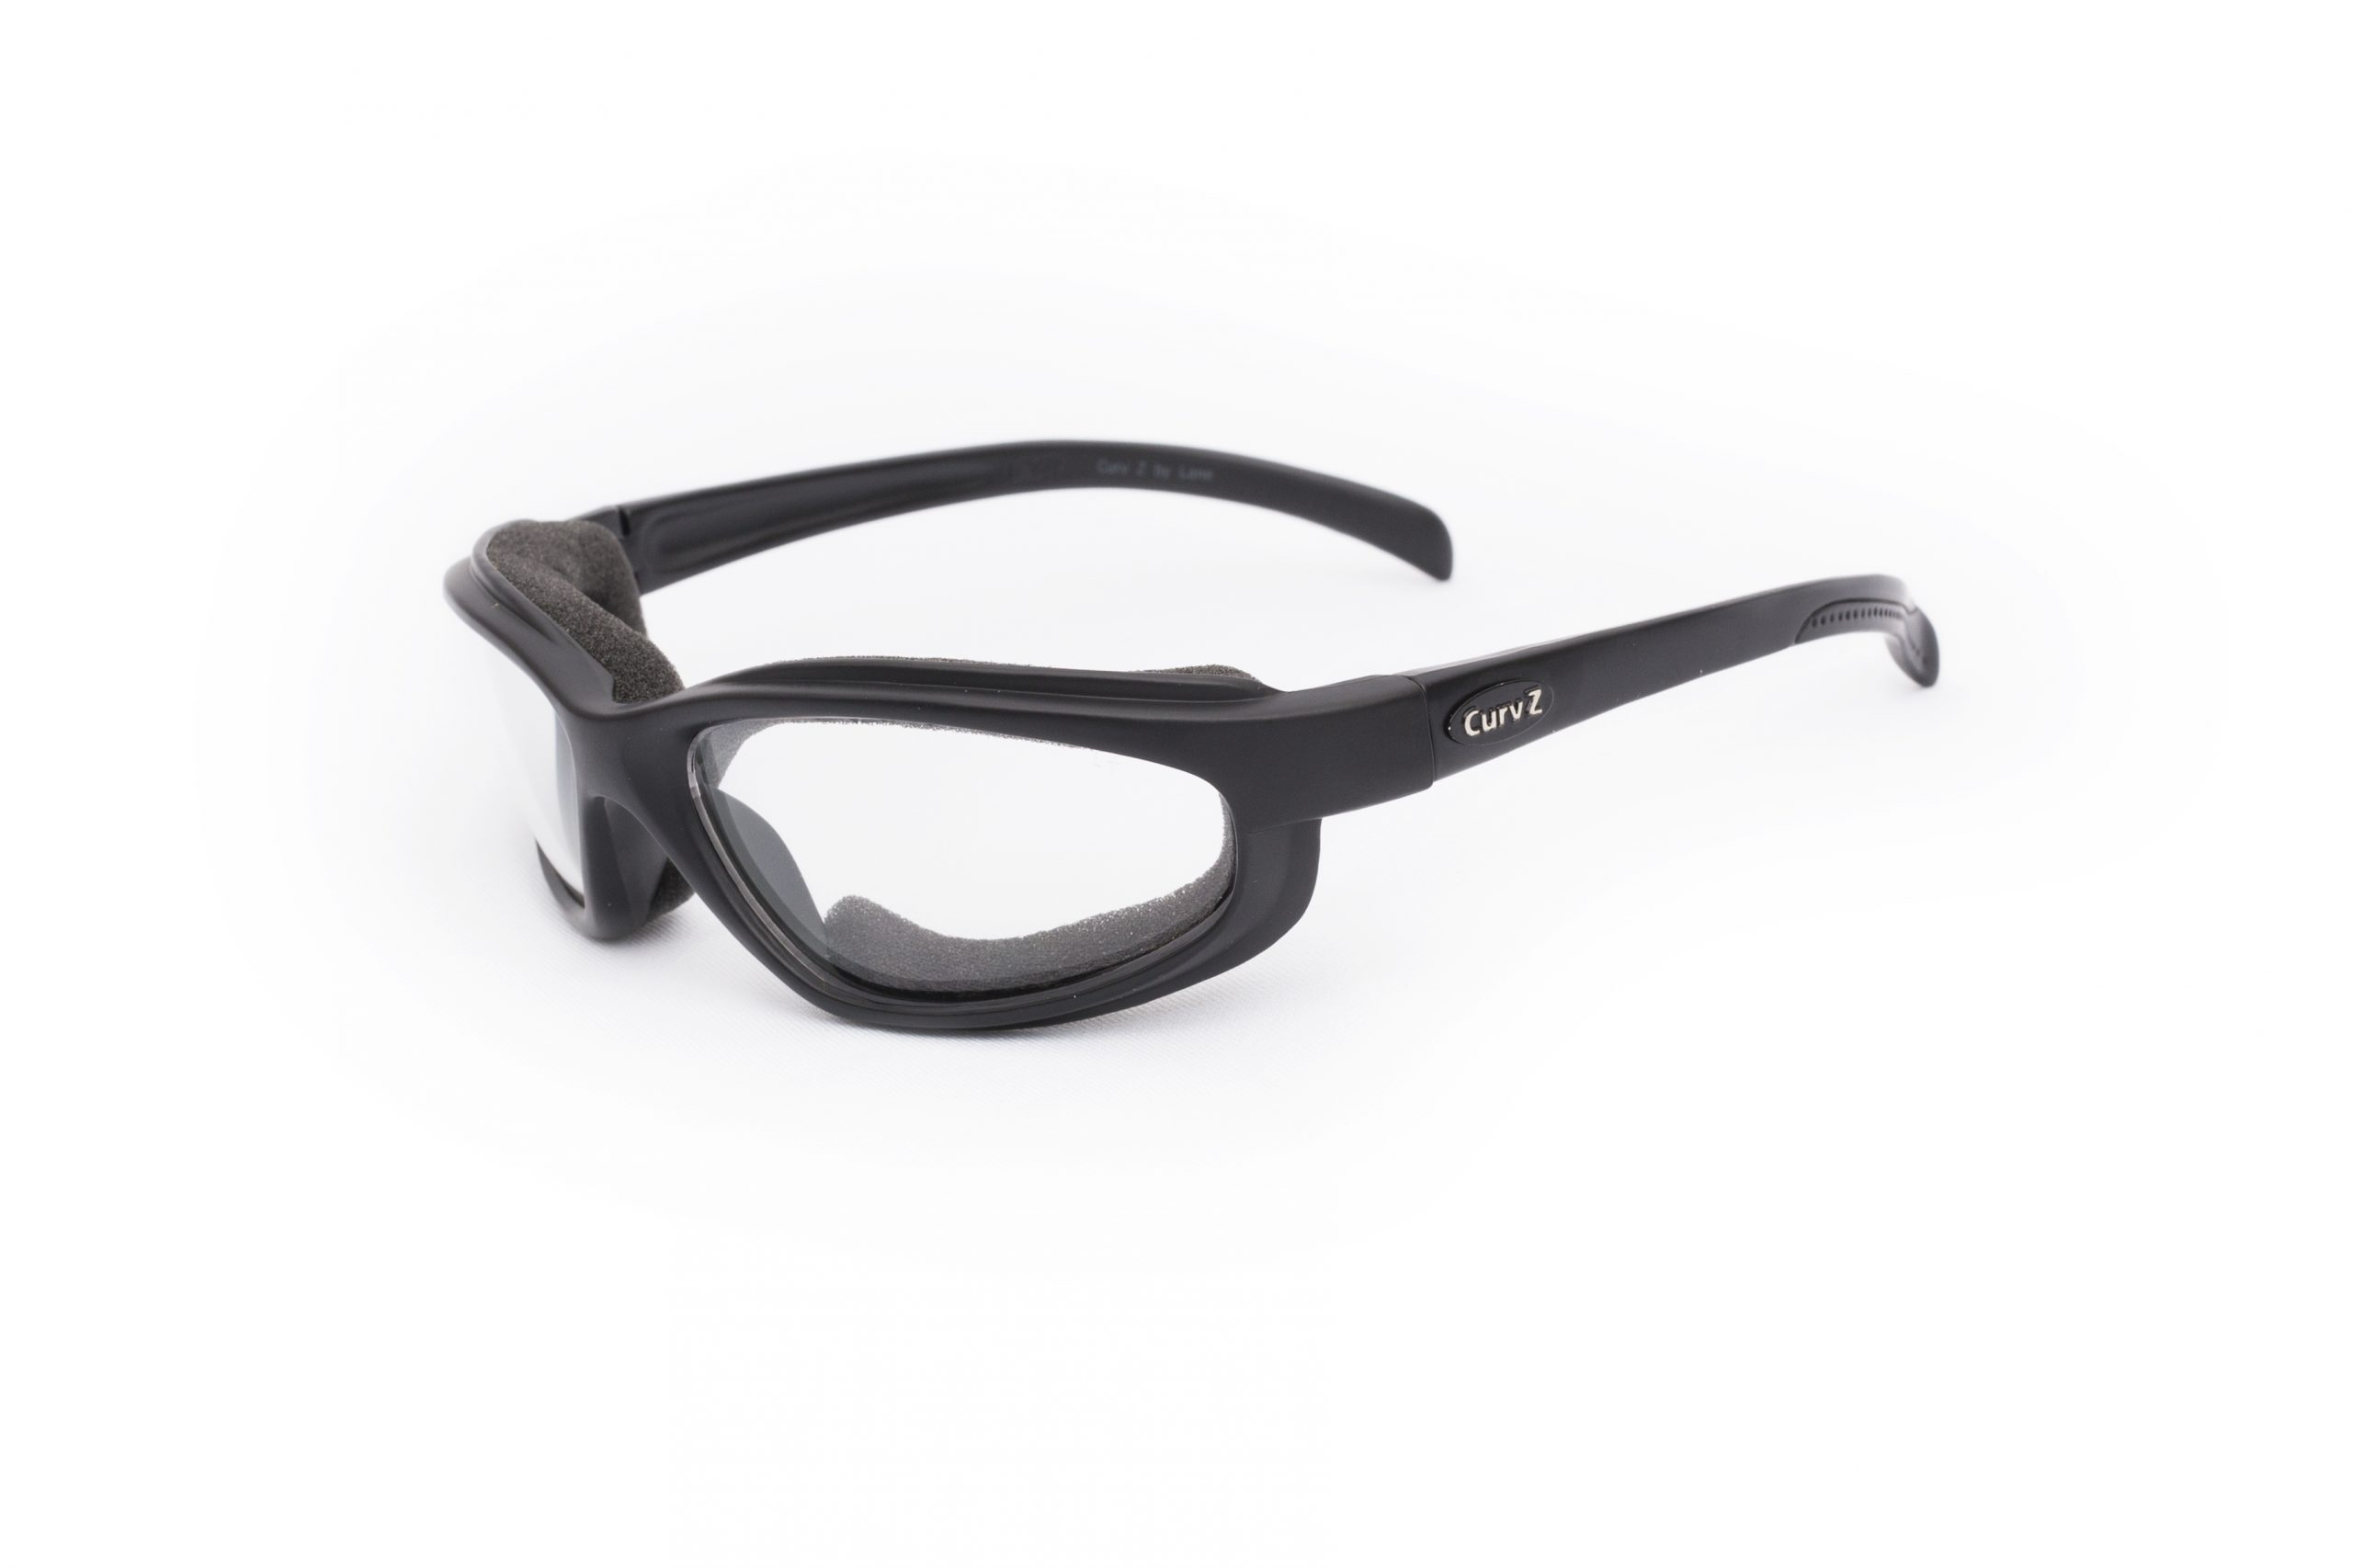 02-02 - CurvZ Clear Foam-Lined Sunglasses with Clear Lenses and Matte Black Frames